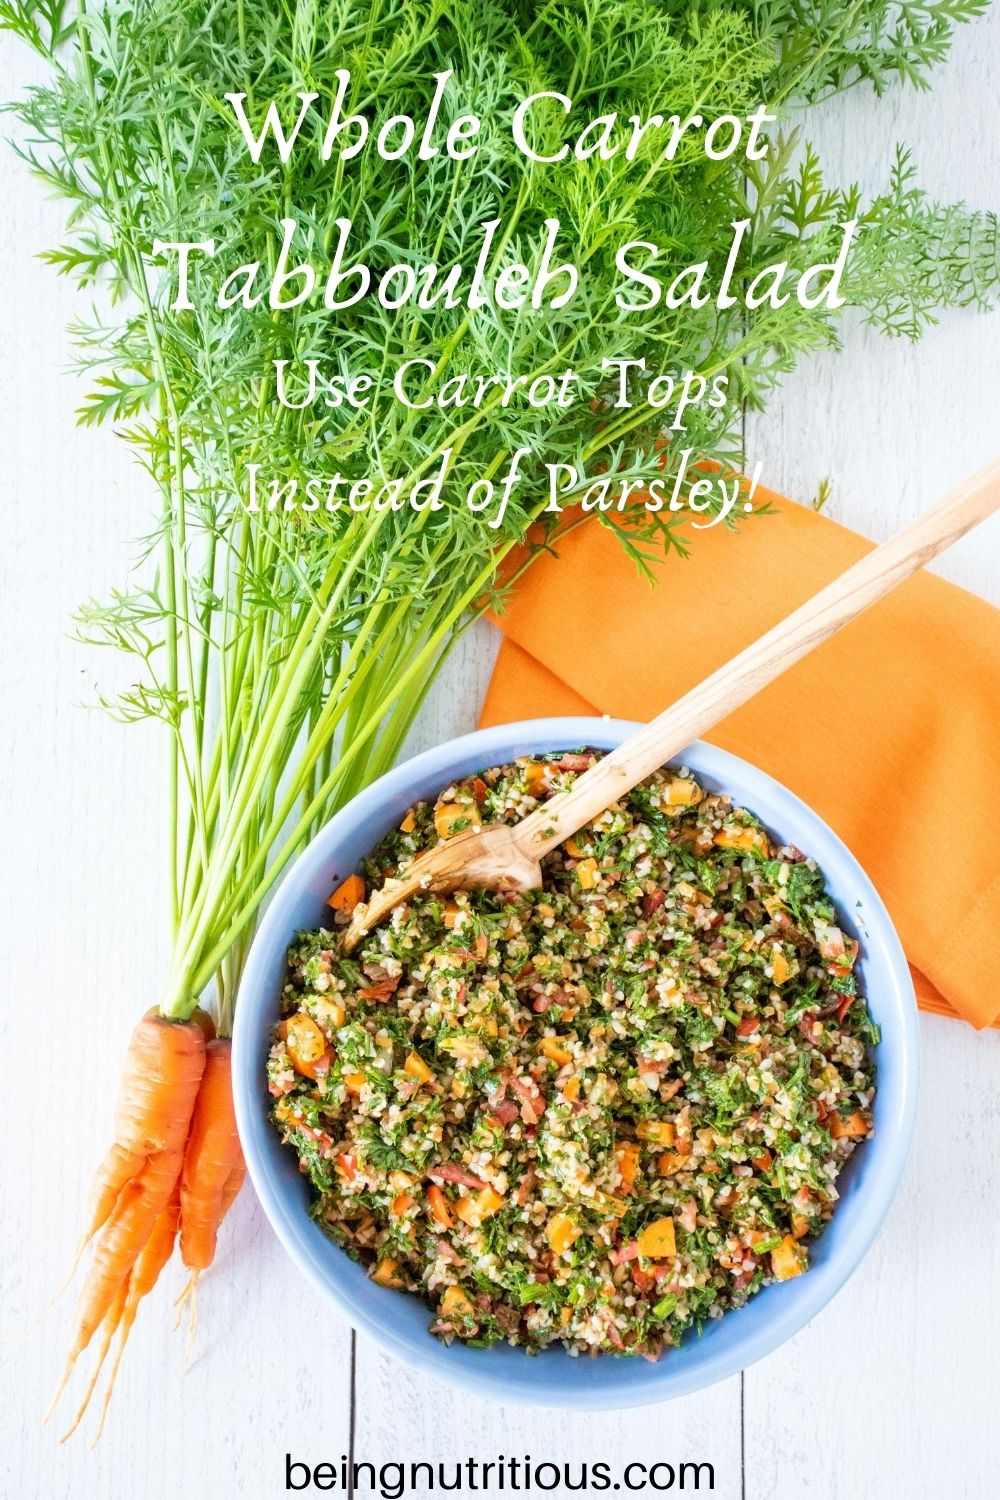 Overhead shot of tabbouleh in a blue bowl, with a bunch of carrots with the tops still attached lying beside the bowl. Text overlay: Whole Carrot Tabbouleh Salad; Use carrot tops instead of parsley!